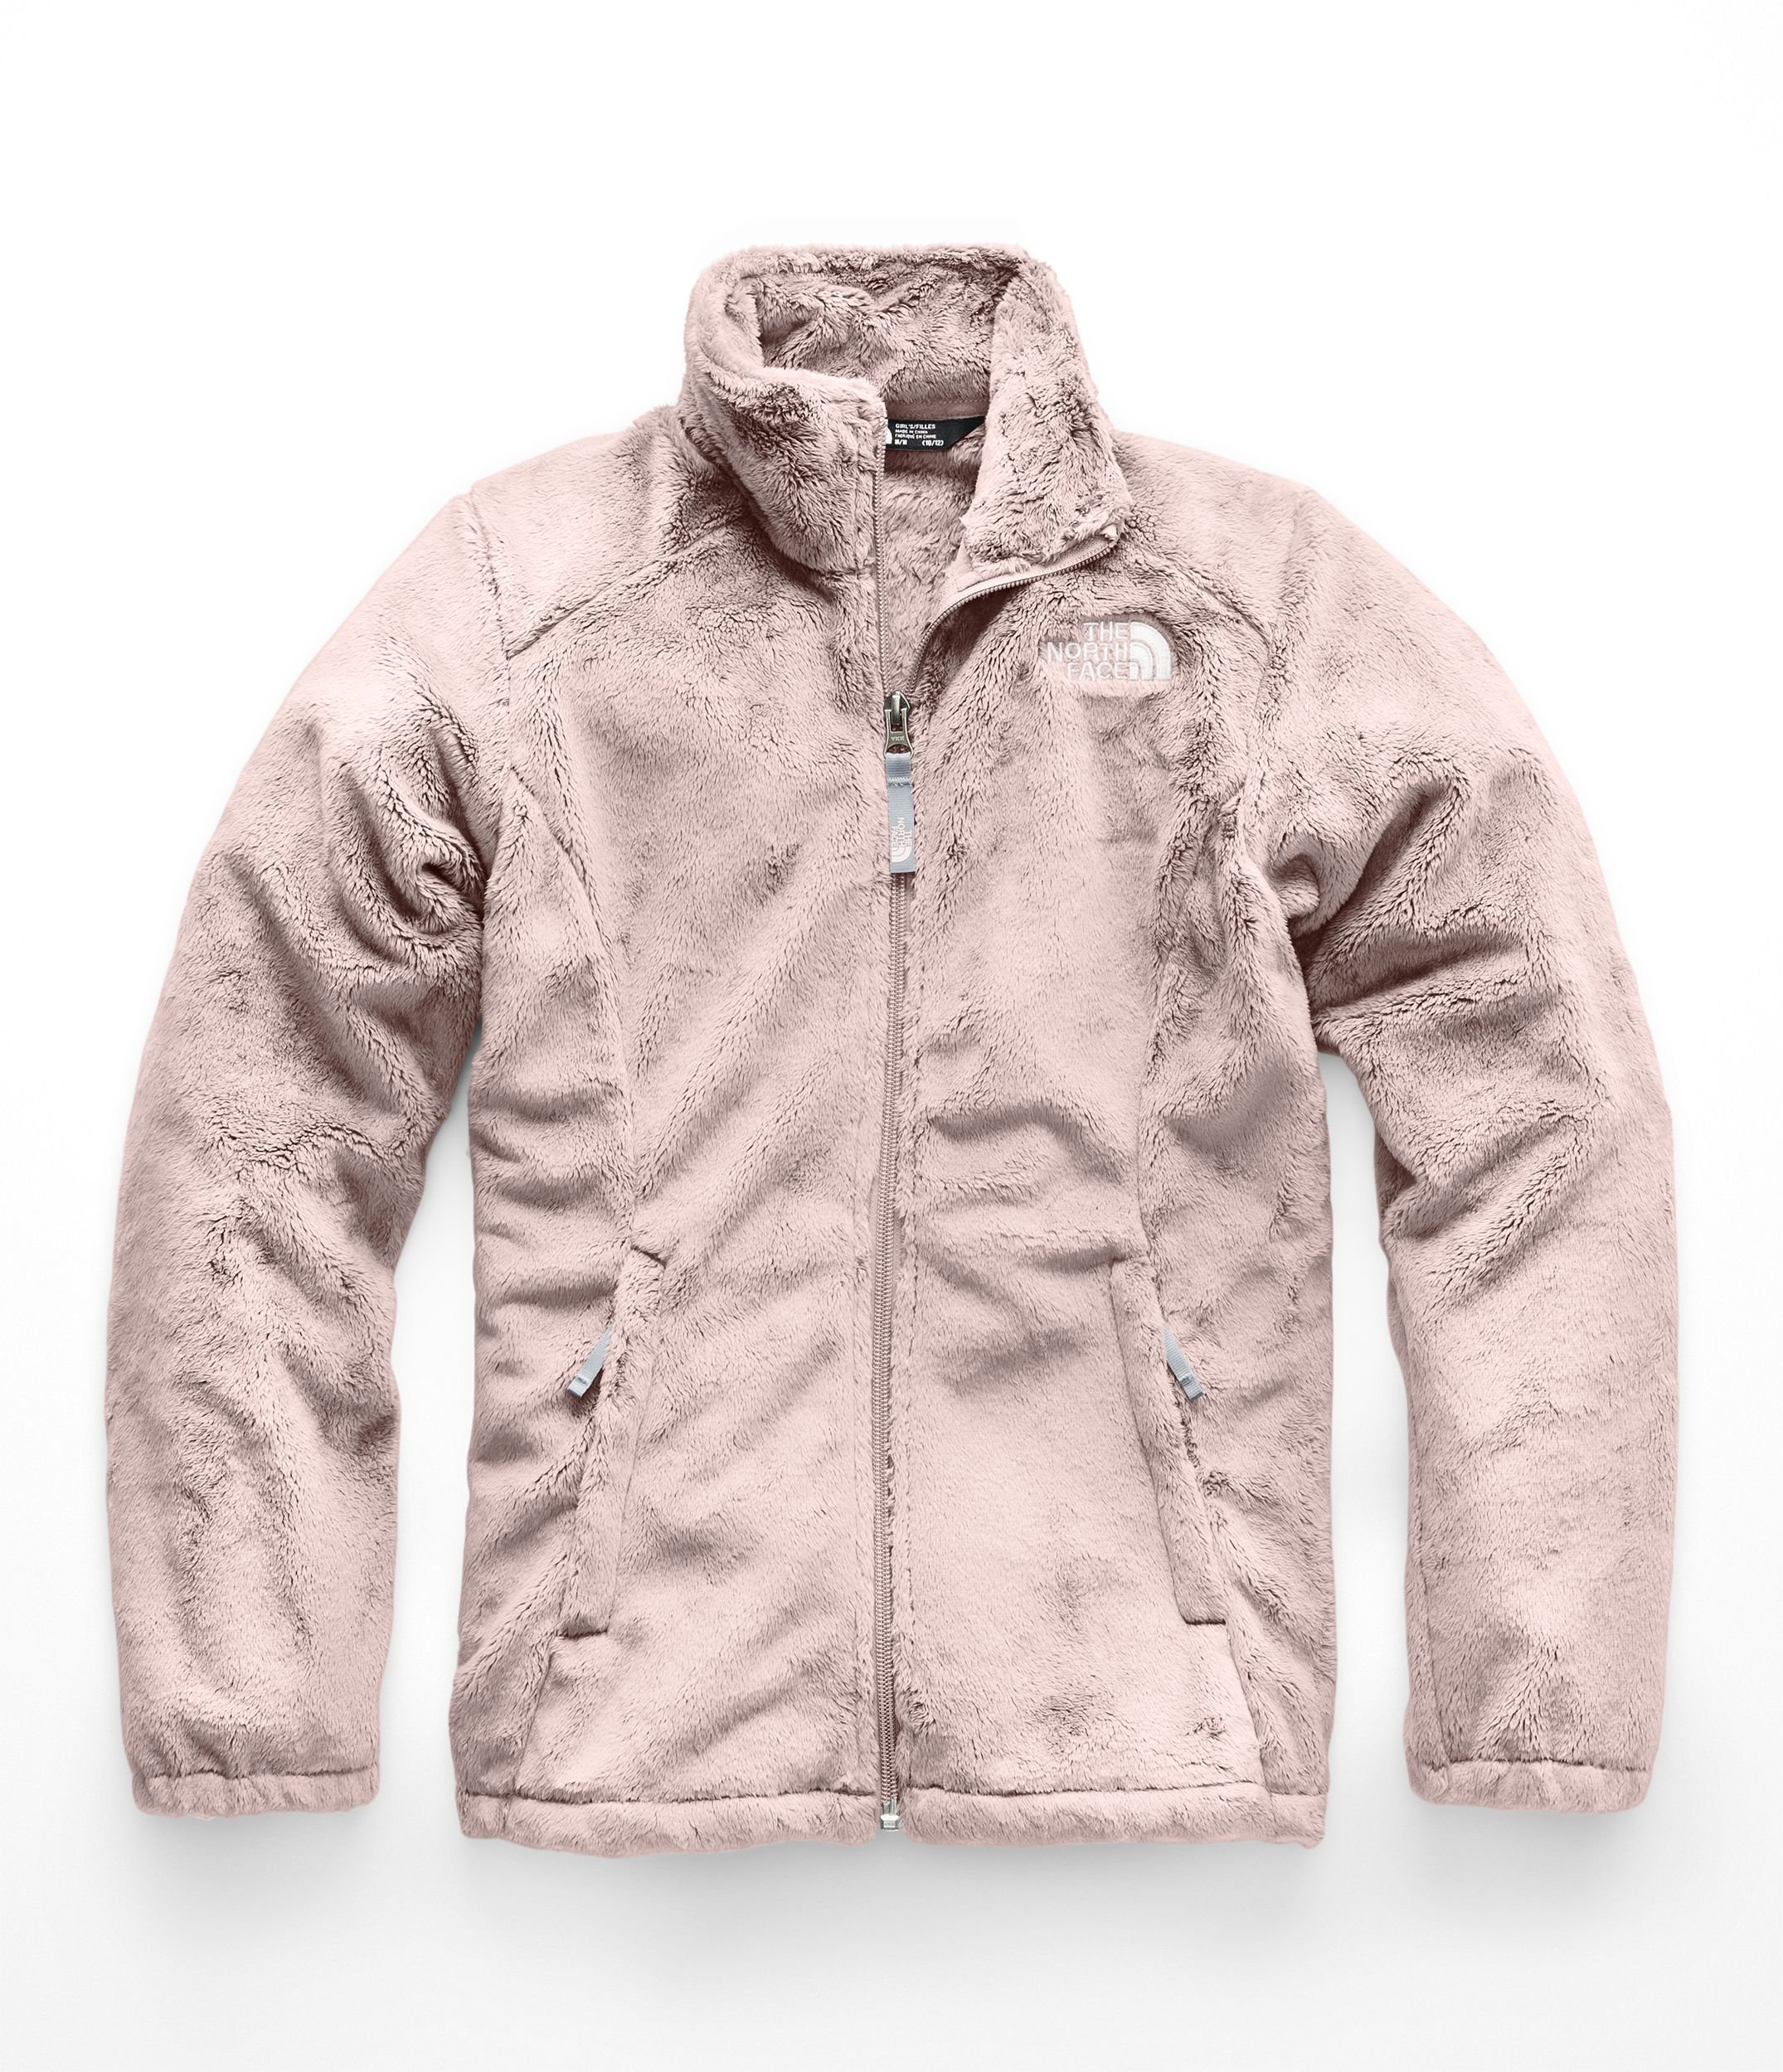 The North Face Girls Osolita Jacket - Purdy Pink - L by The North Face